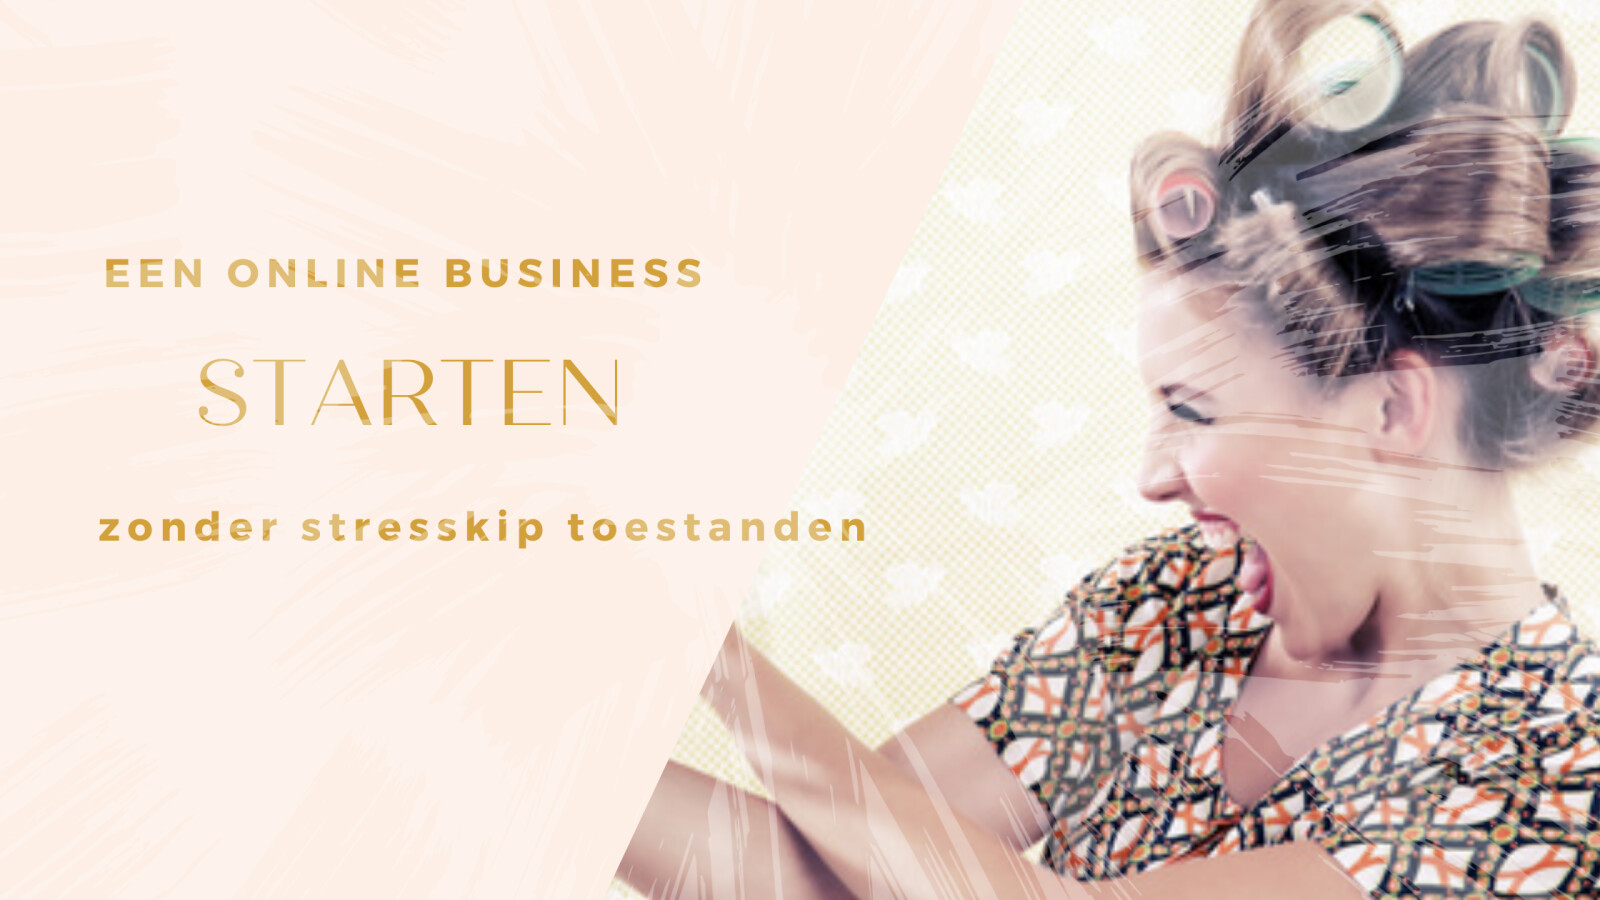 Een online business starten